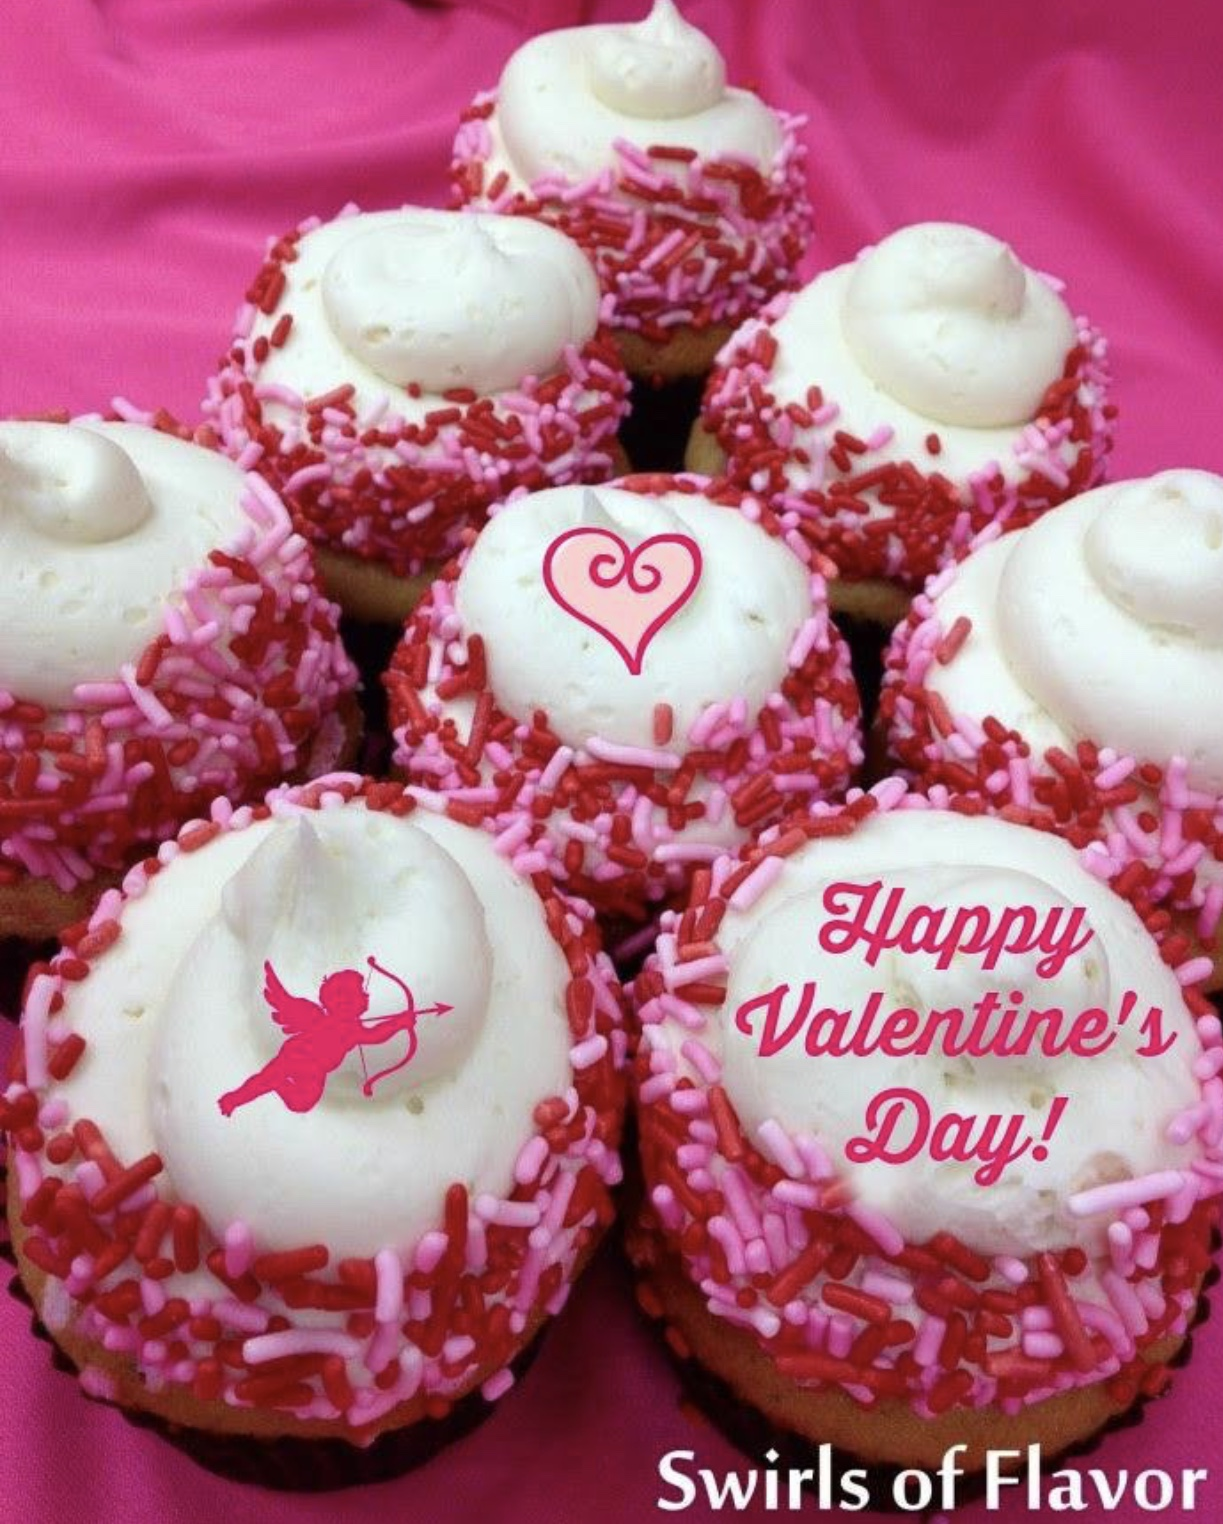 Happy Valentine's Day cupcakes with pink sprinkles